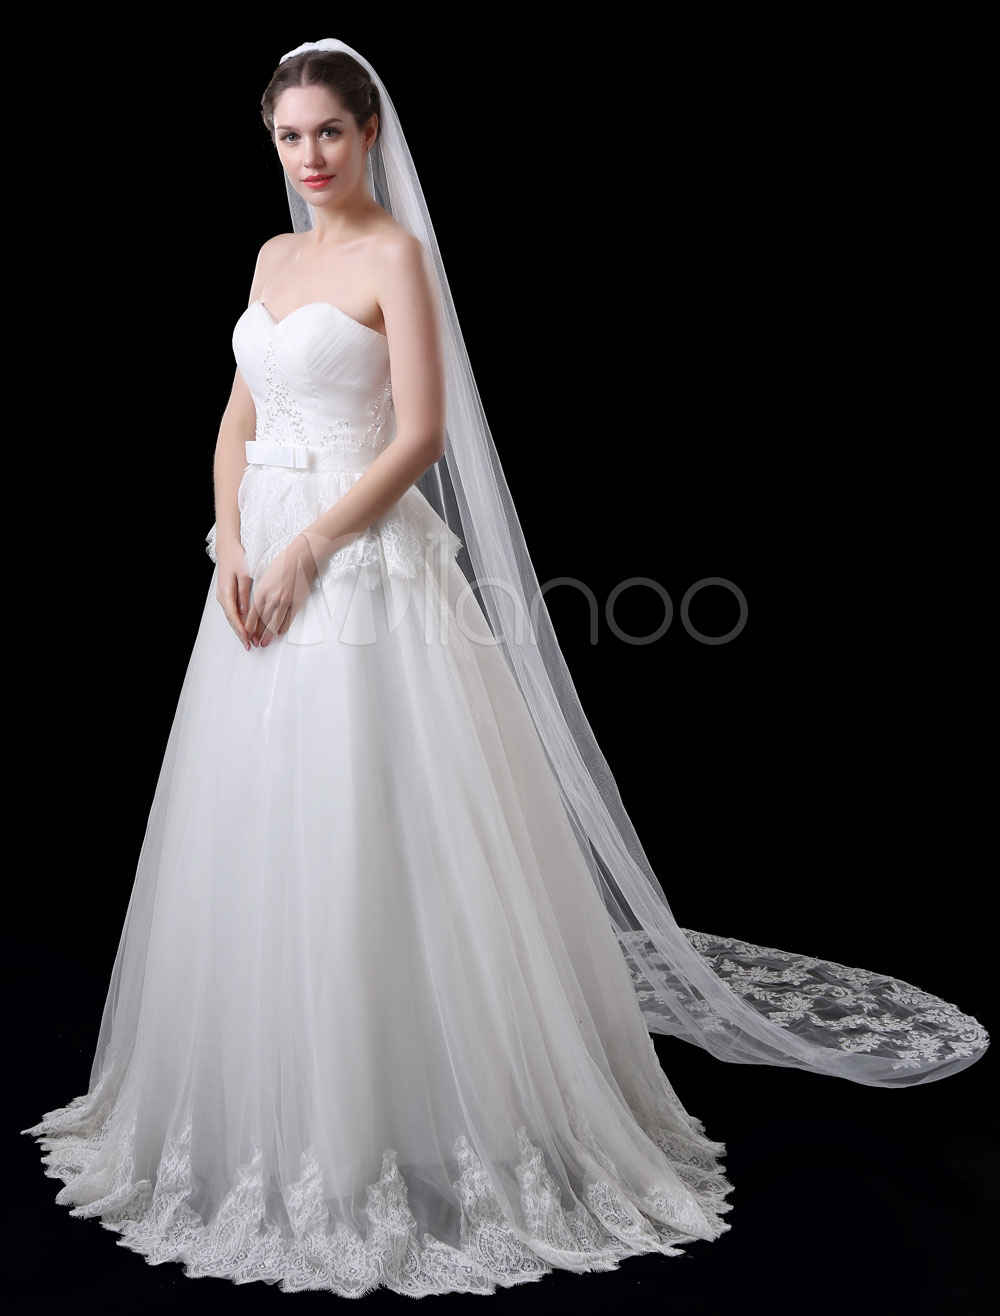 Buy Cathedral Wedding Veil Tulle Ivory Lace Applique Edge One Tier Bridal Veil for $15.99 in Milanoo store